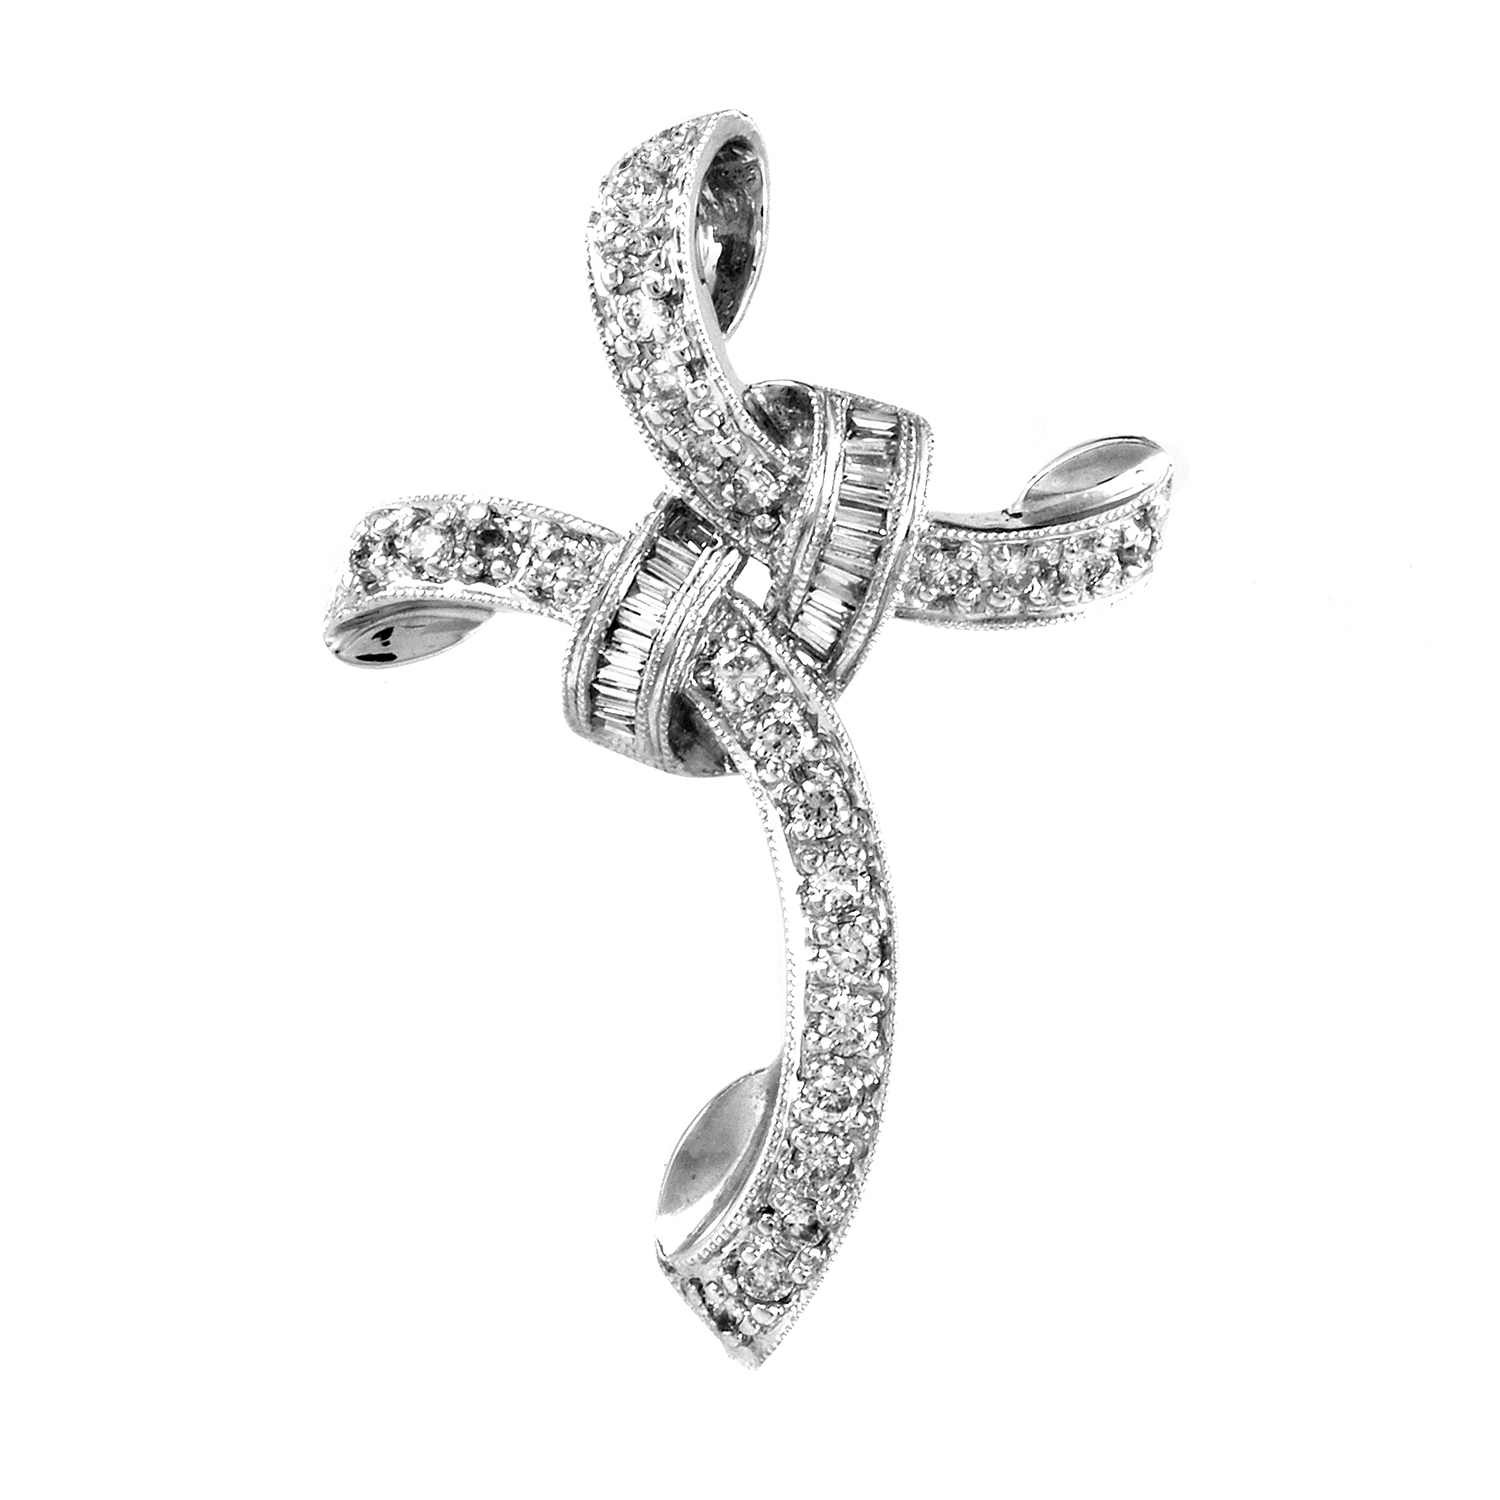 Women's 14K White Gold Twisted Diamond Cross Pendant MFC08-061716